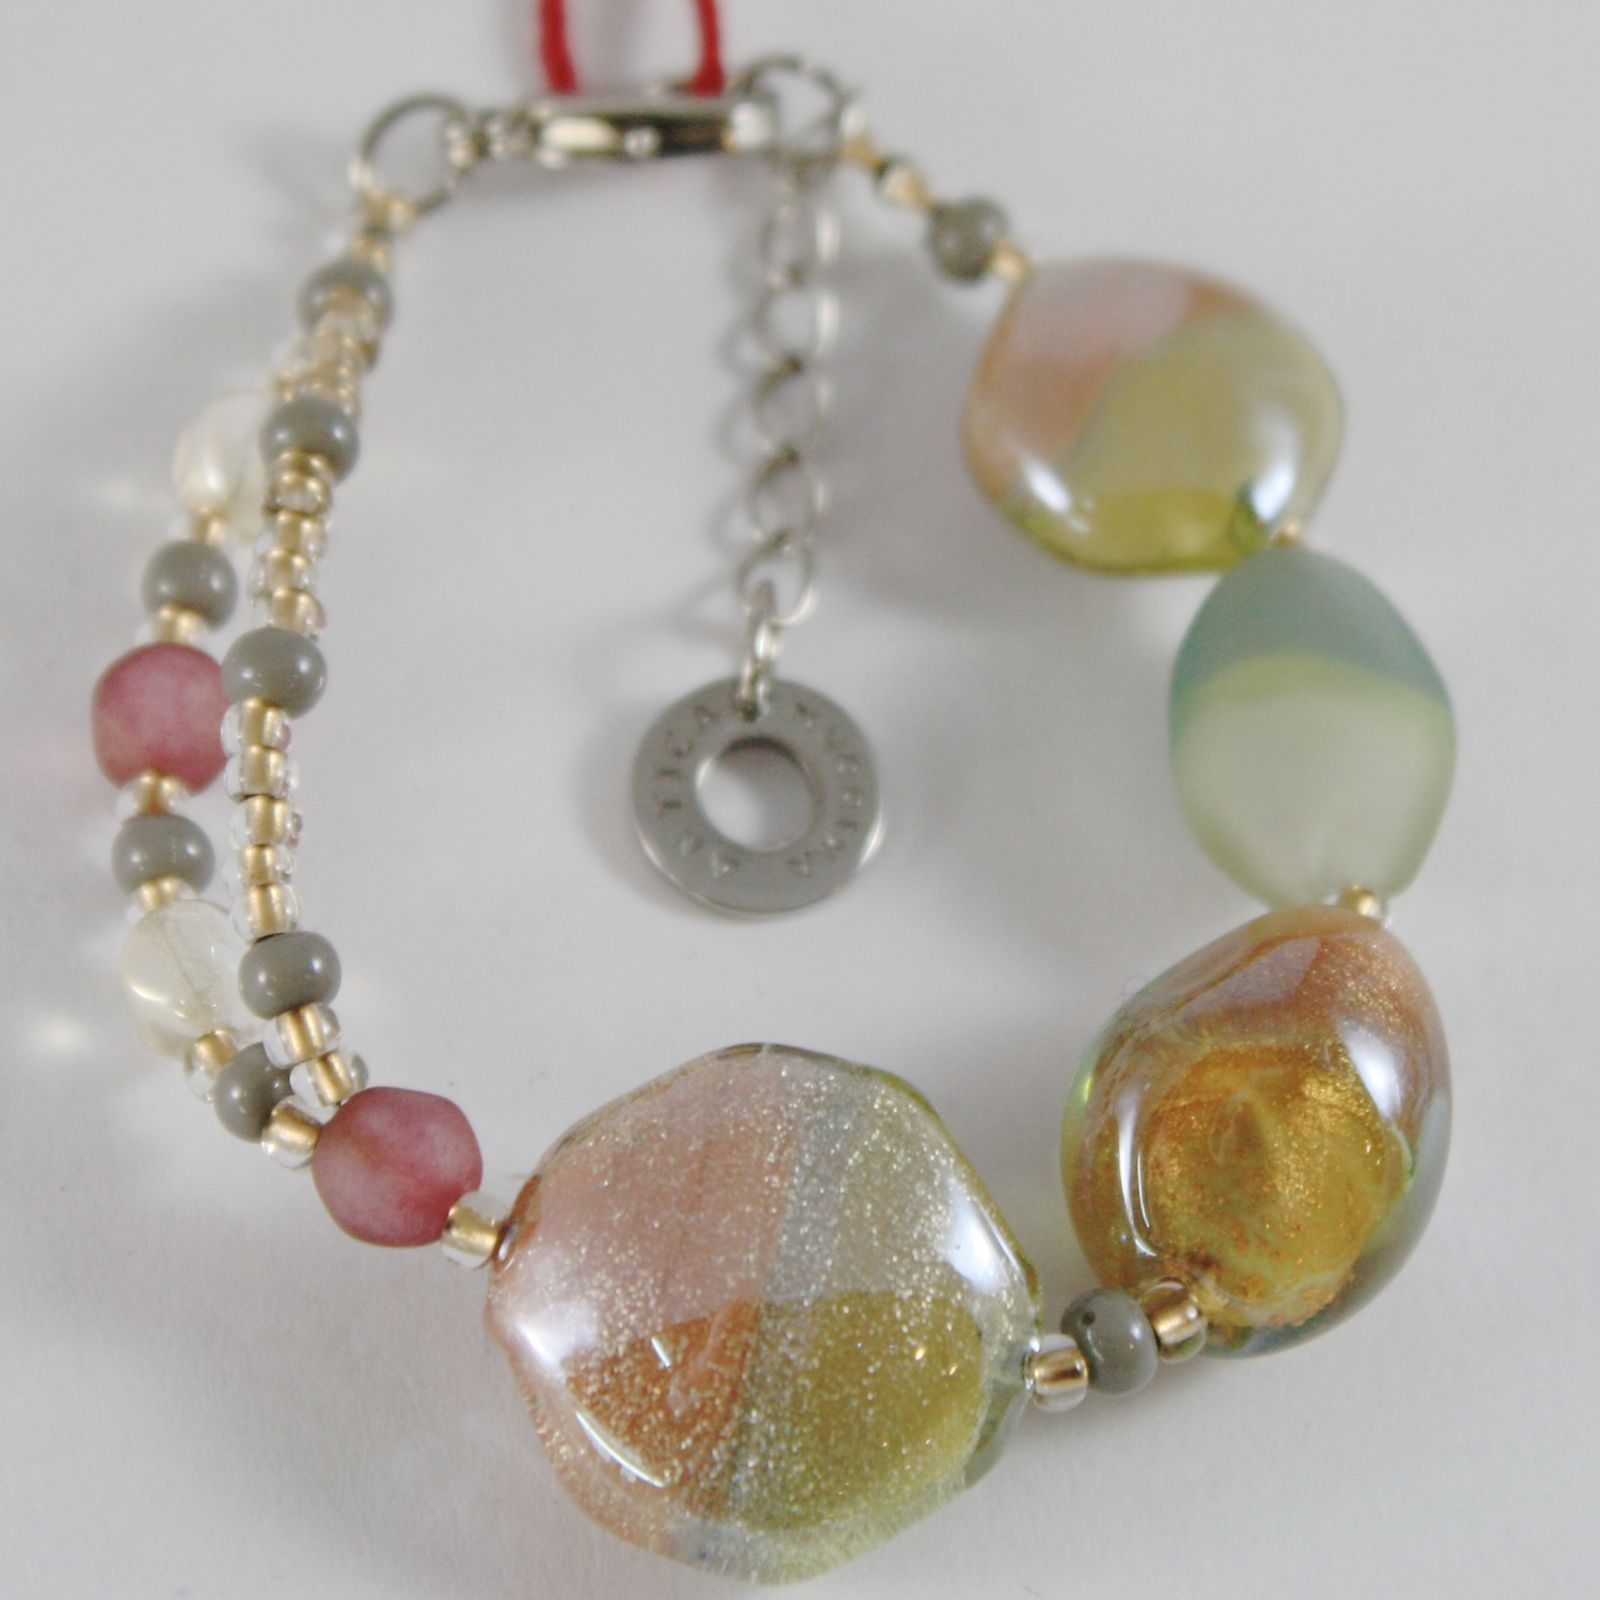 BRACELET ANTICA MURRINA VENEZIA WITH MURANO GLASS SAND AND BEIGE BR725A10